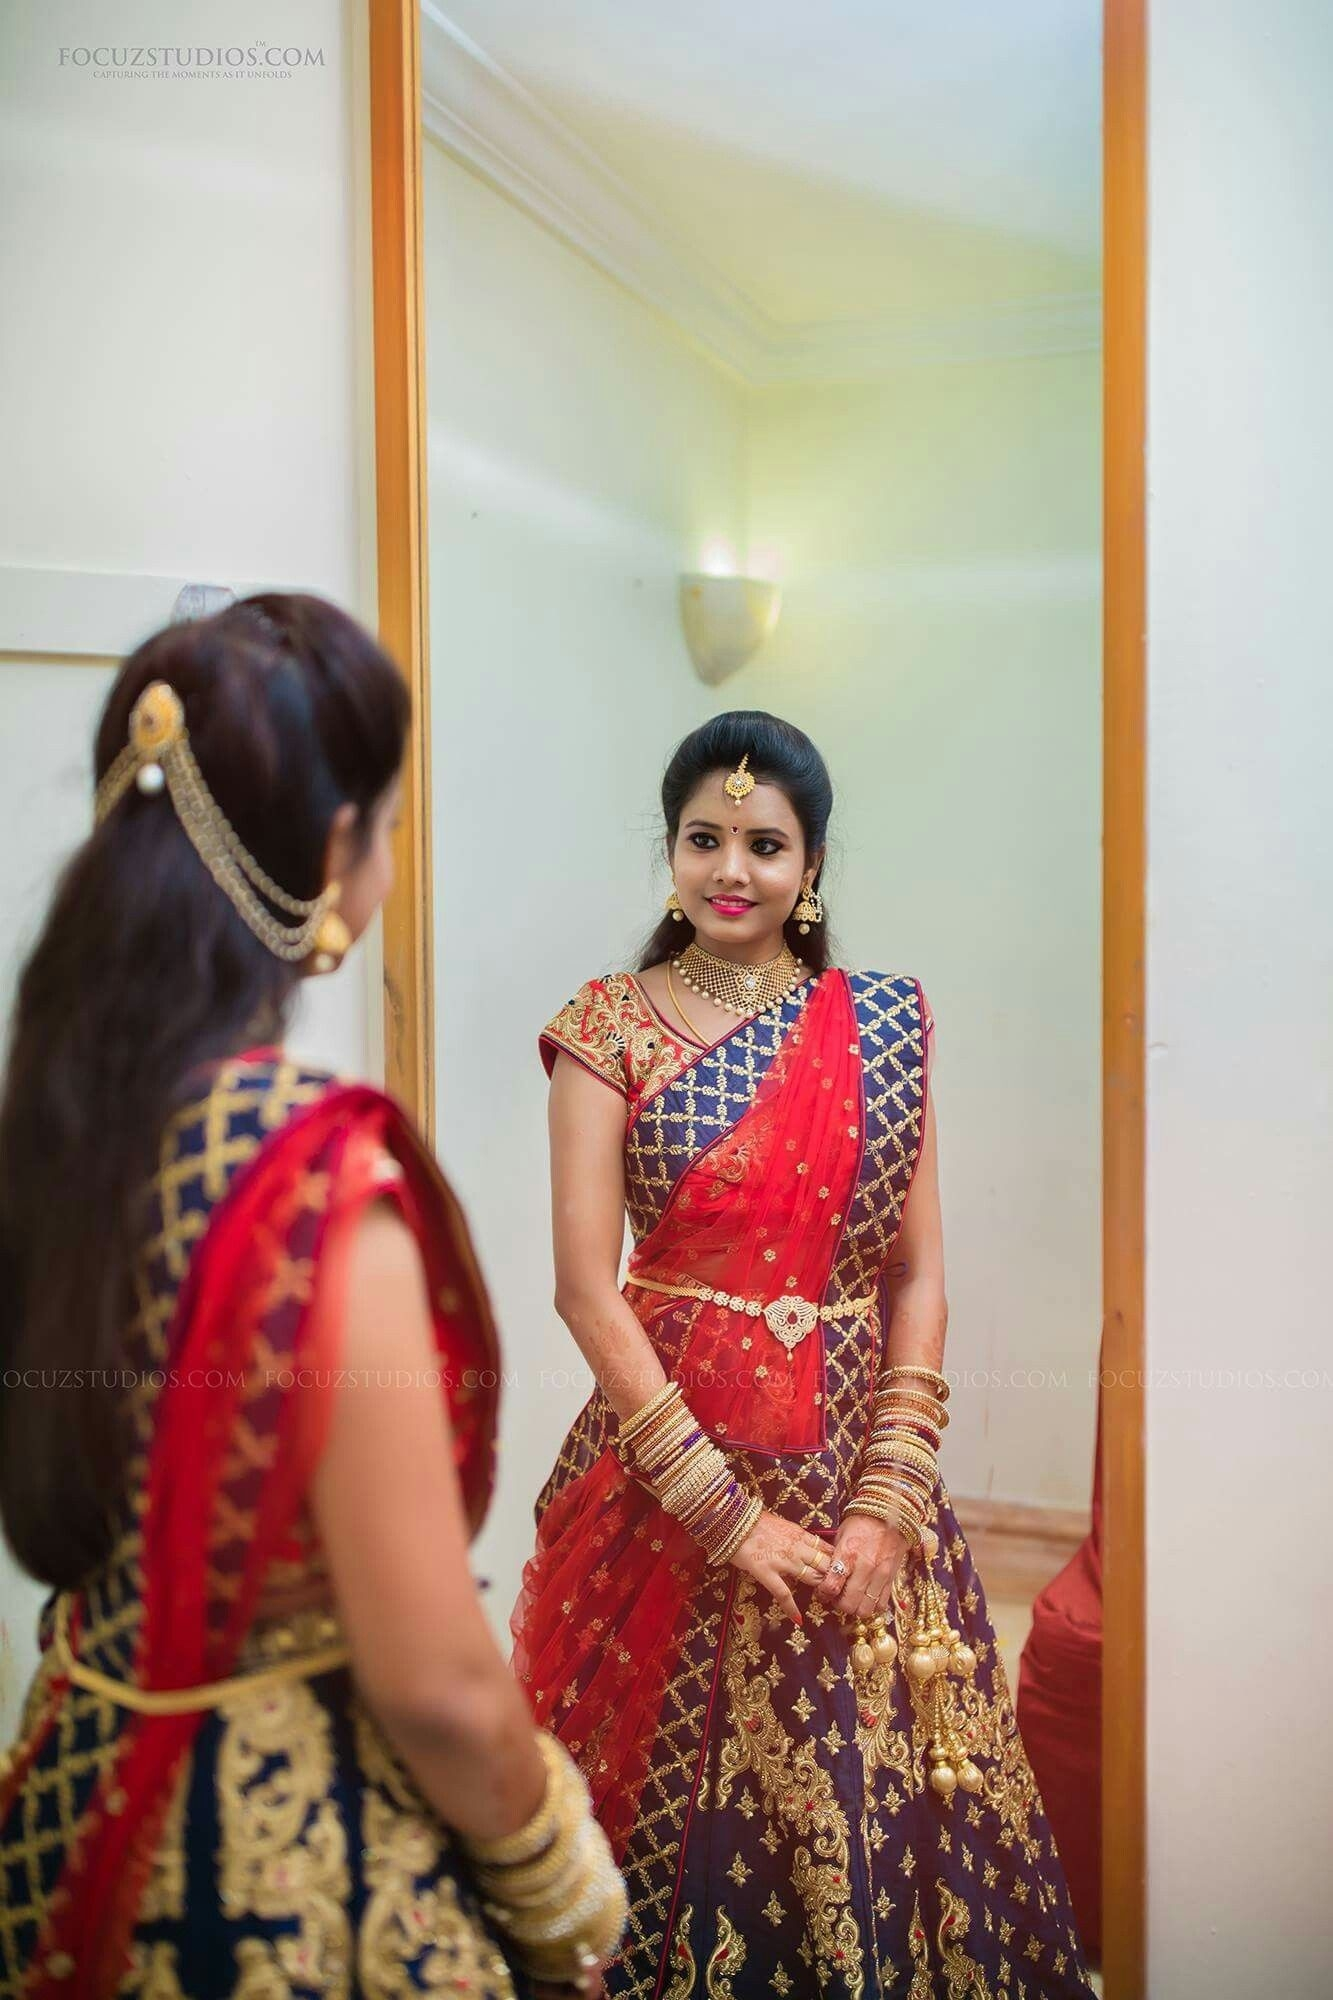 Hair Style | Hairstyles In 2019 | Indian Bridal Lehenga intended for South Indian Hairstyle For Wedding Reception